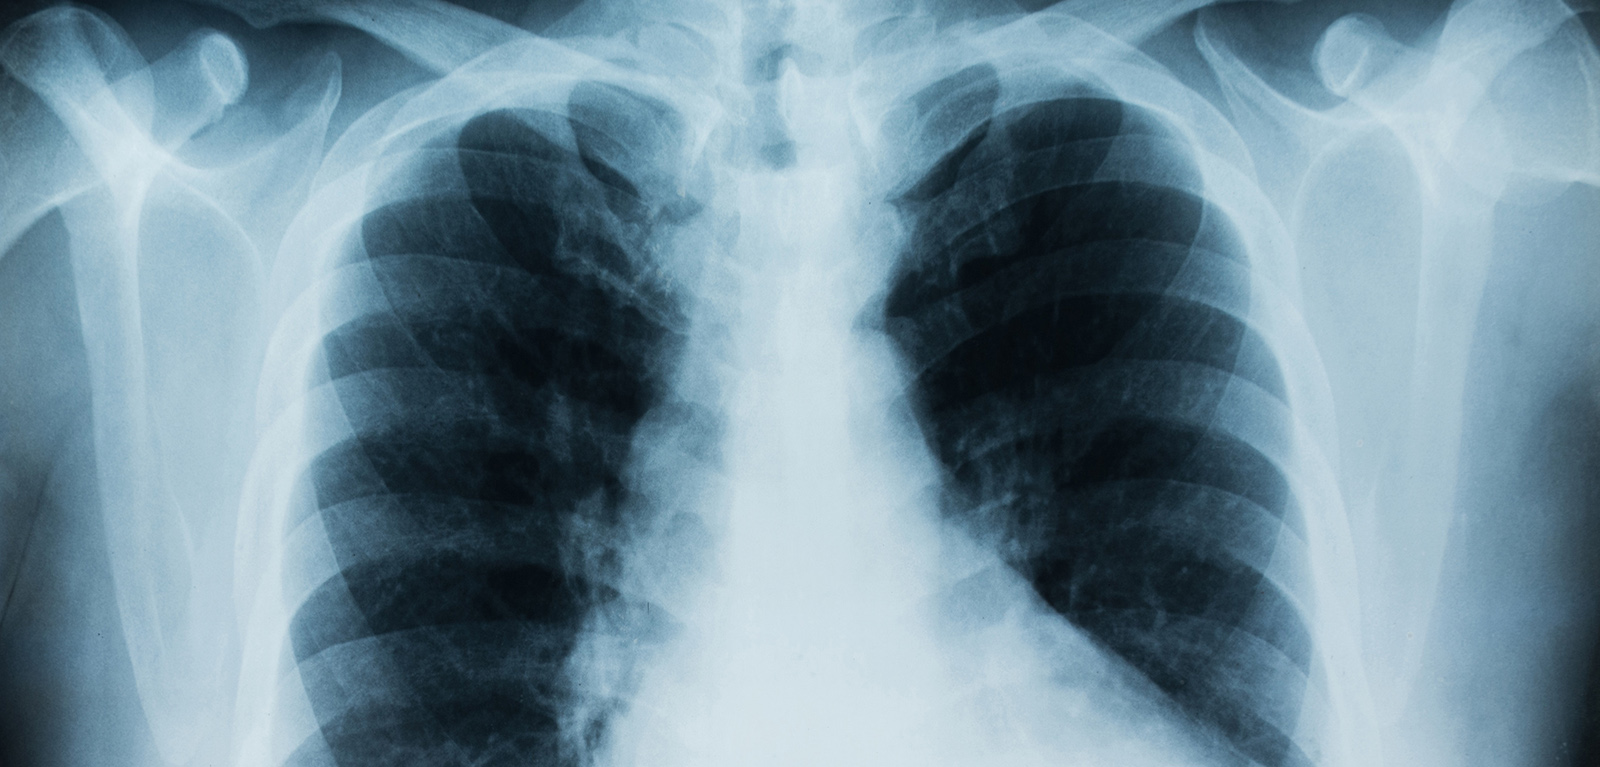 lungs, cancer, xray